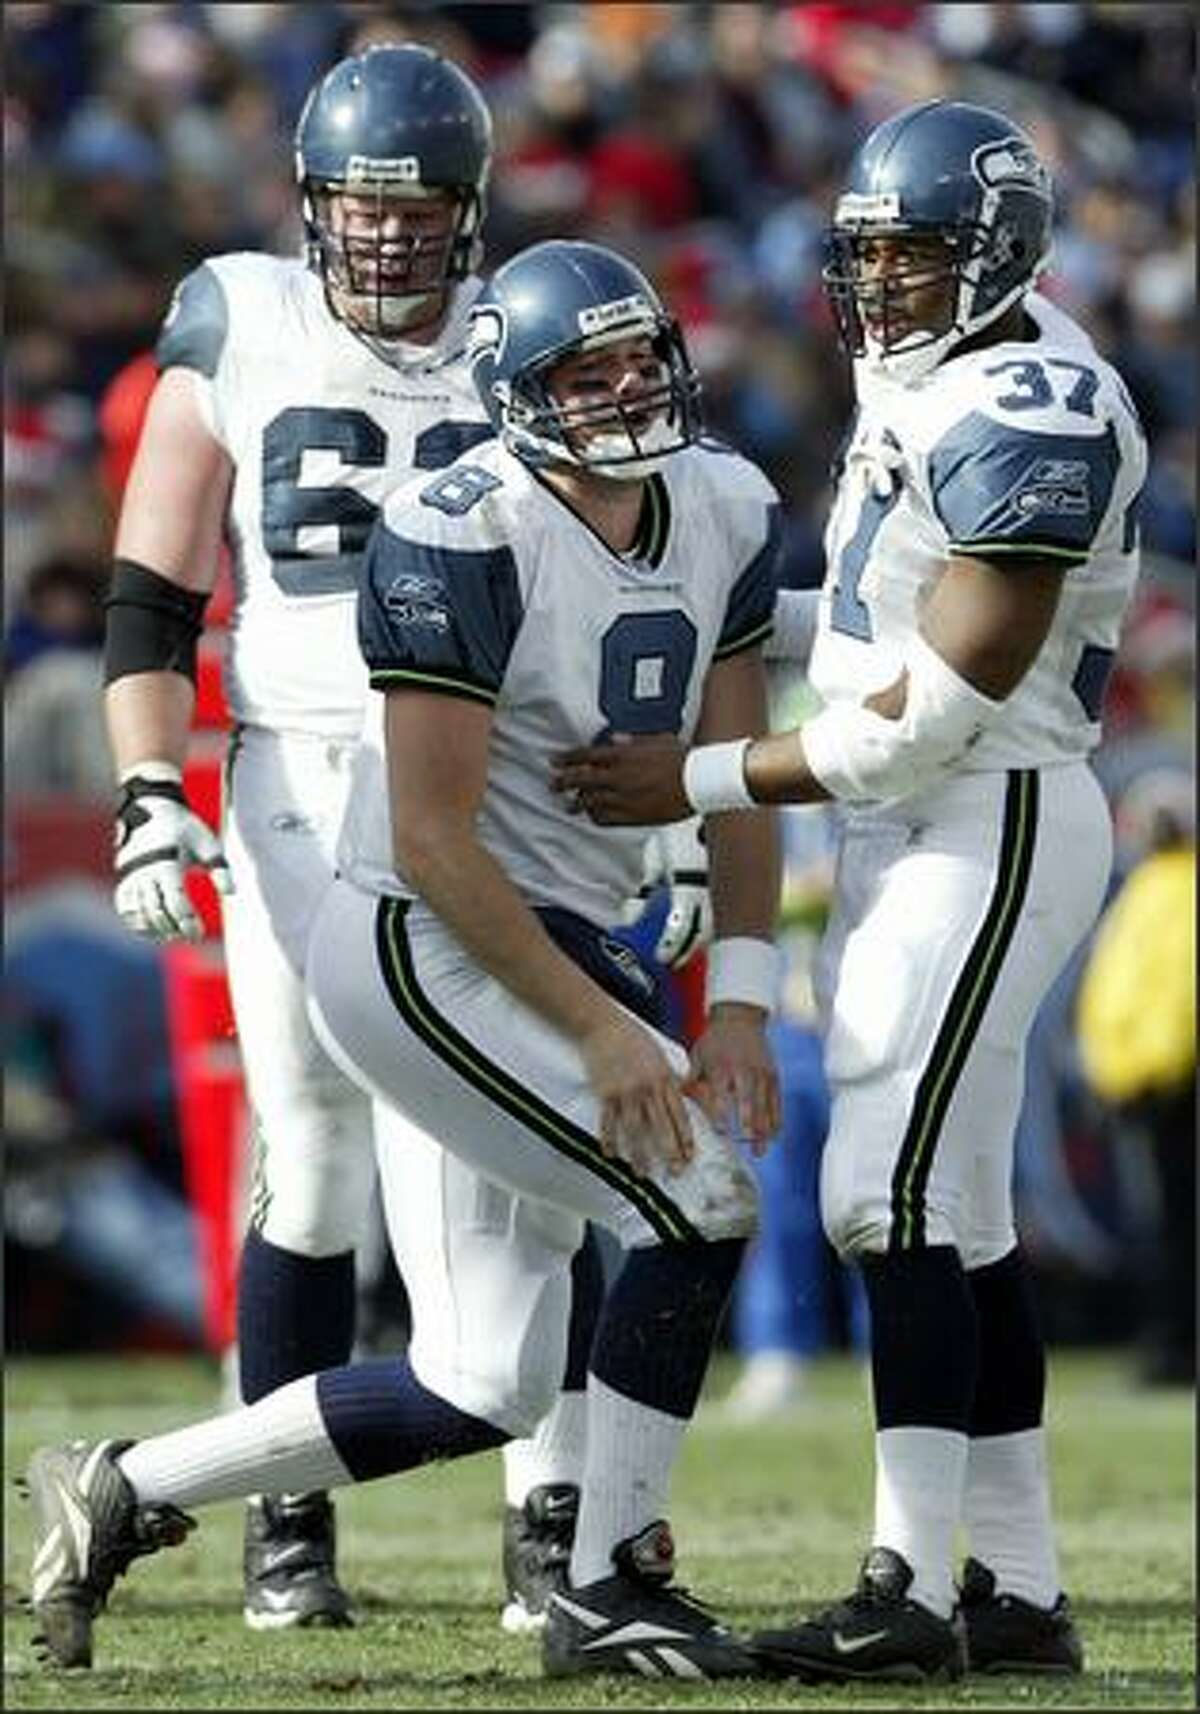 Matt Hasselbeck gets a hand from Shaun Alexander after being hit by Tennessee's Albert Haynesworth during the second quarter. Haynesworth hit Hasselbeck after jumping offsides.